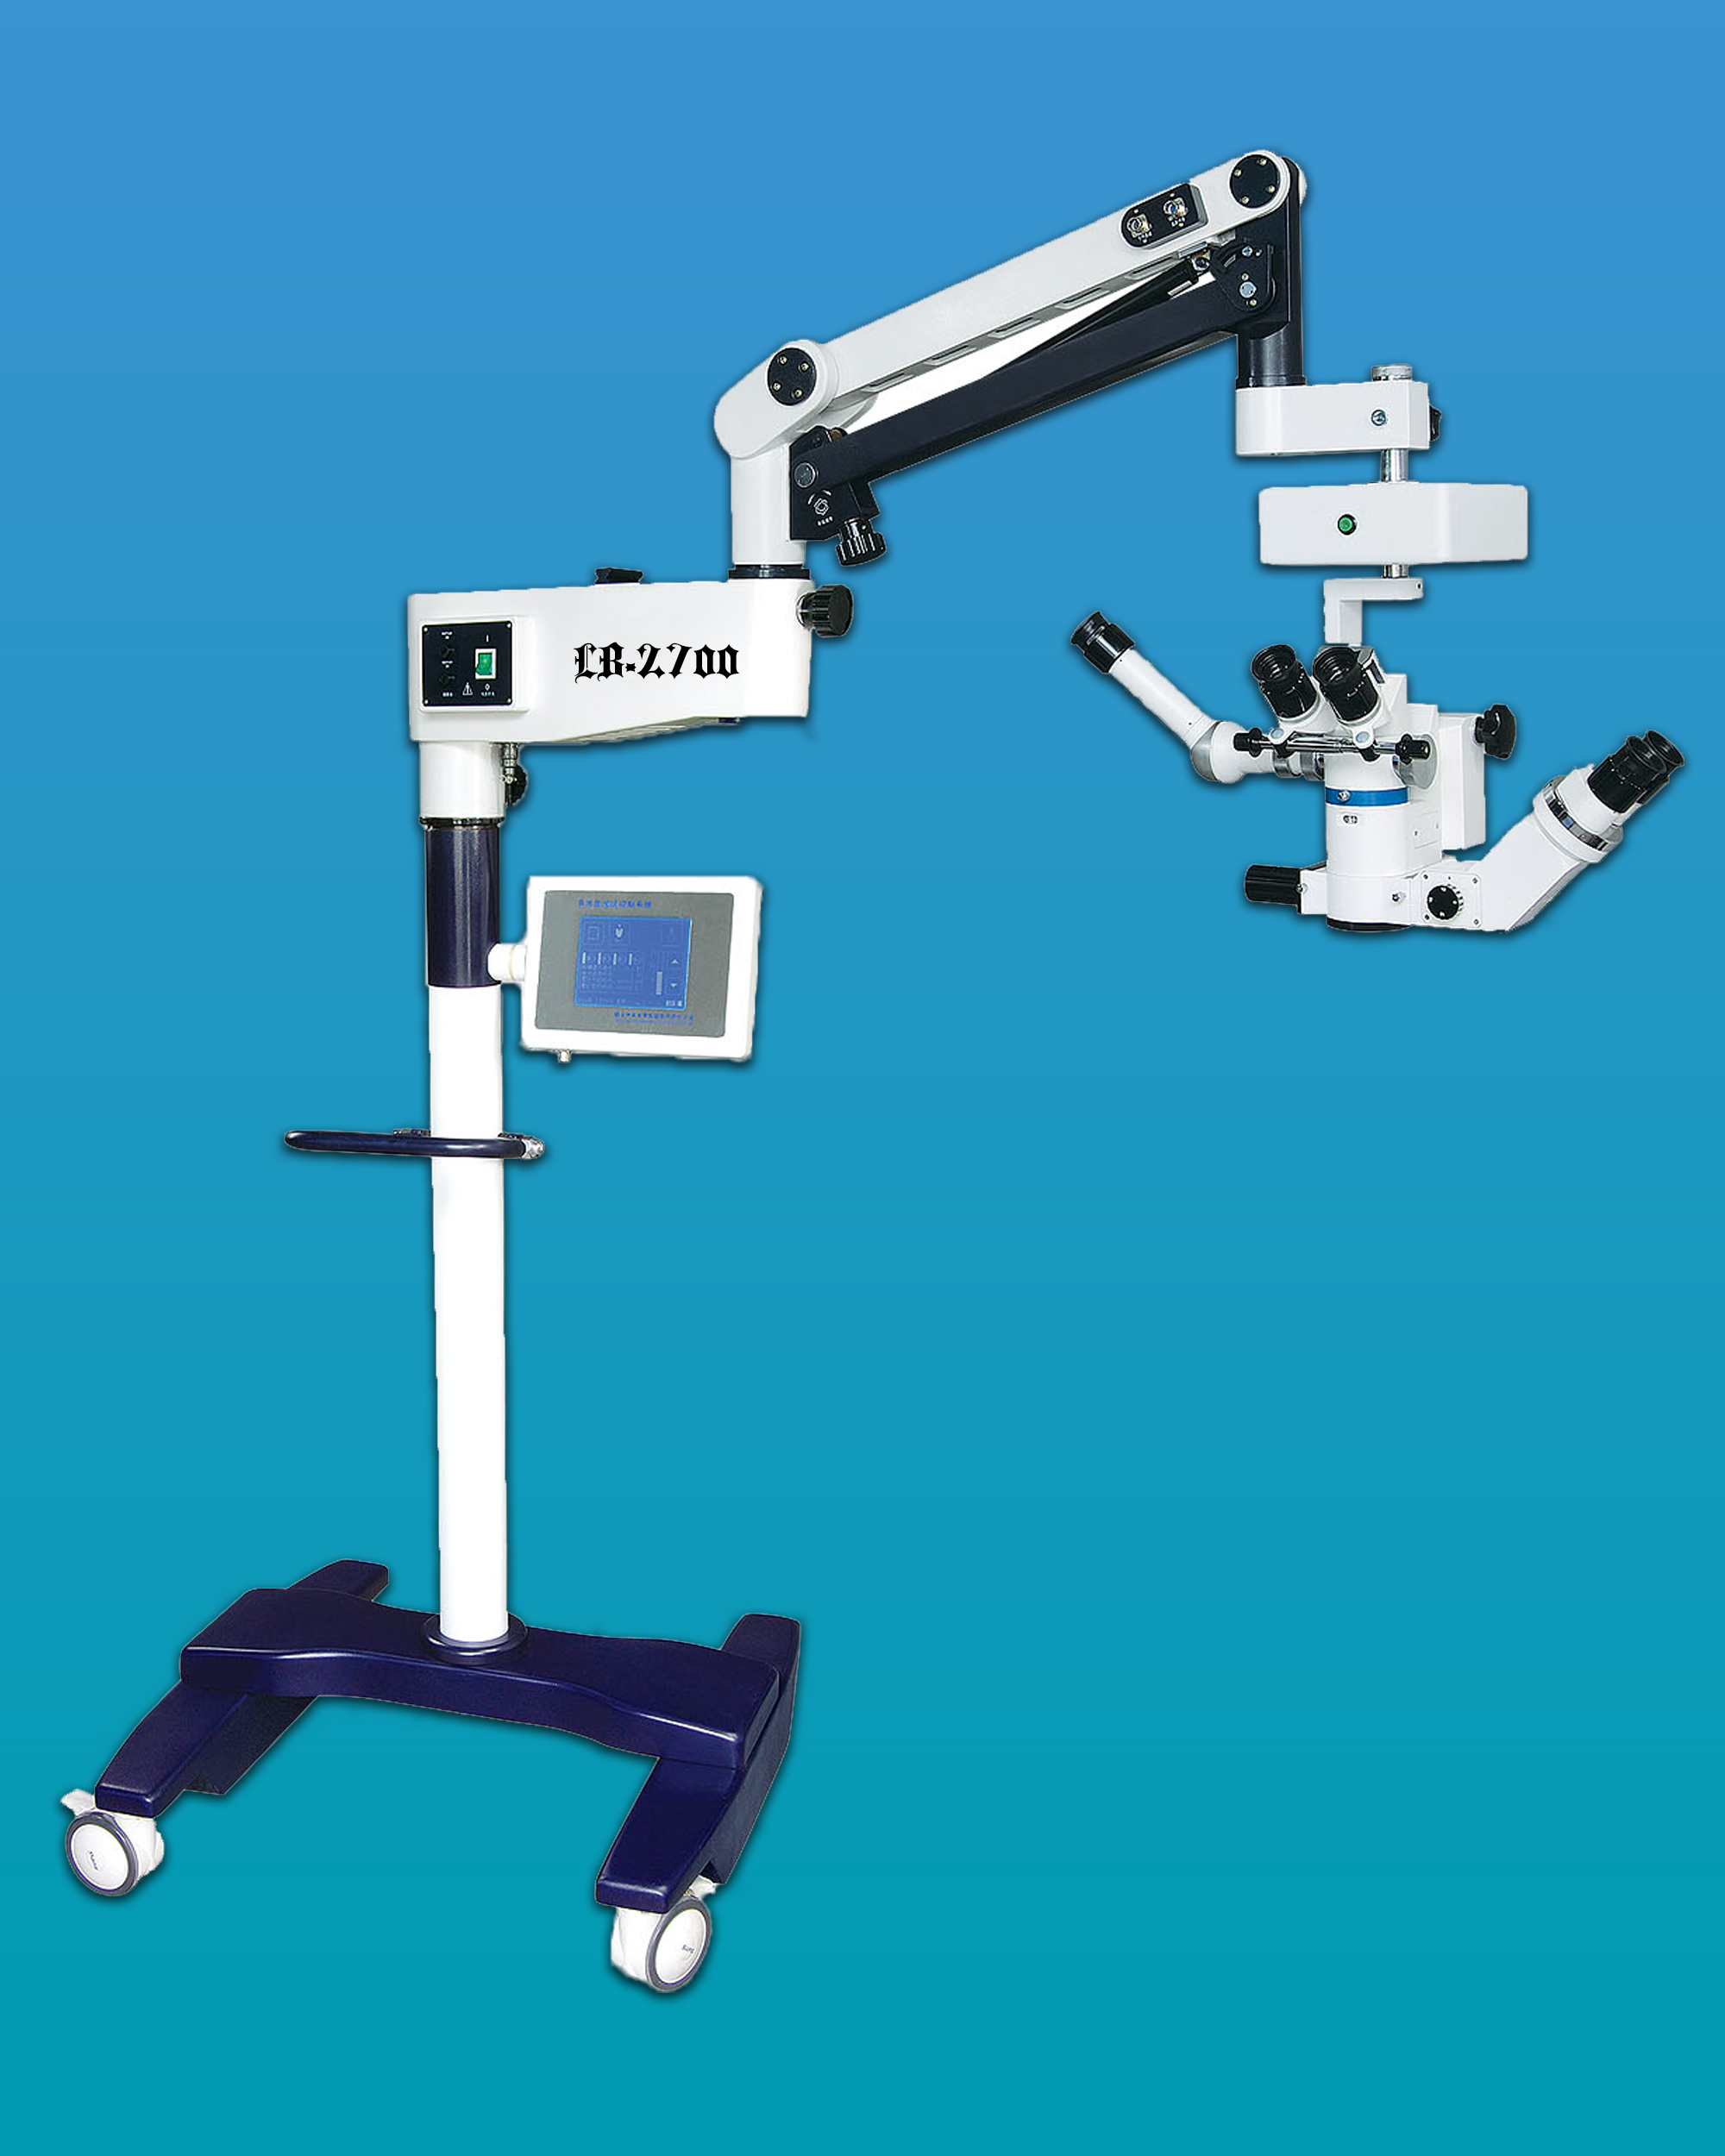 [LB-2700] Binocular Latest Surgical Microscope w/ Assistant Scopes for Ophthalmic & General Surgery